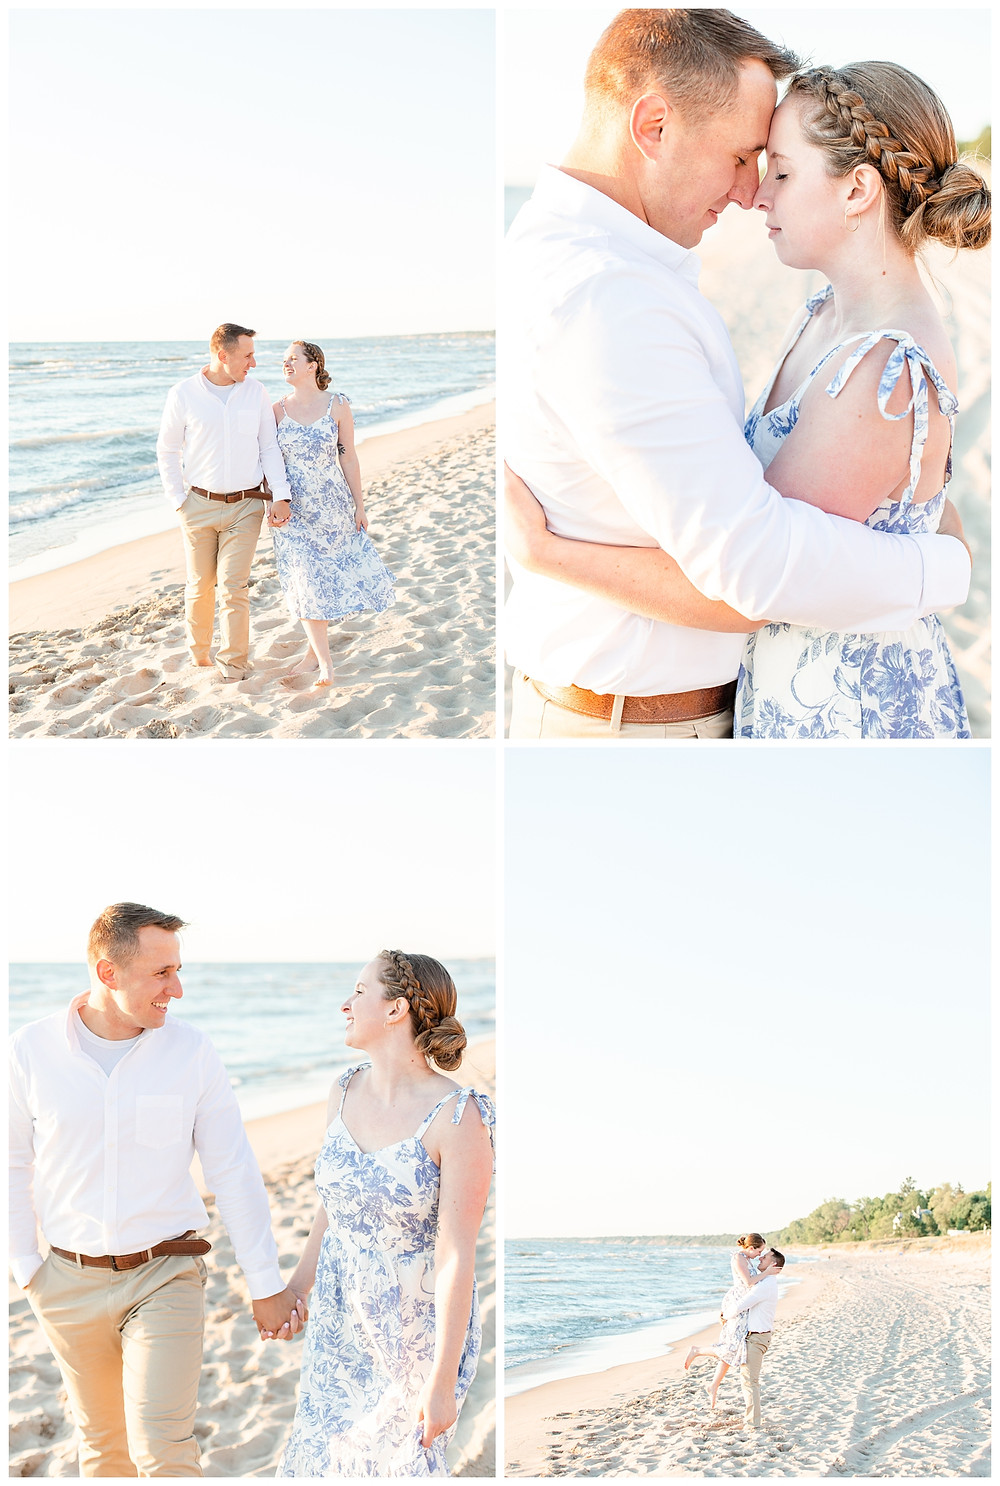 Josh and Andrea wedding photography husband and wife photographer team michigan pictures south haven engagement pictures session beach photo shoot fiance walking laughing lift